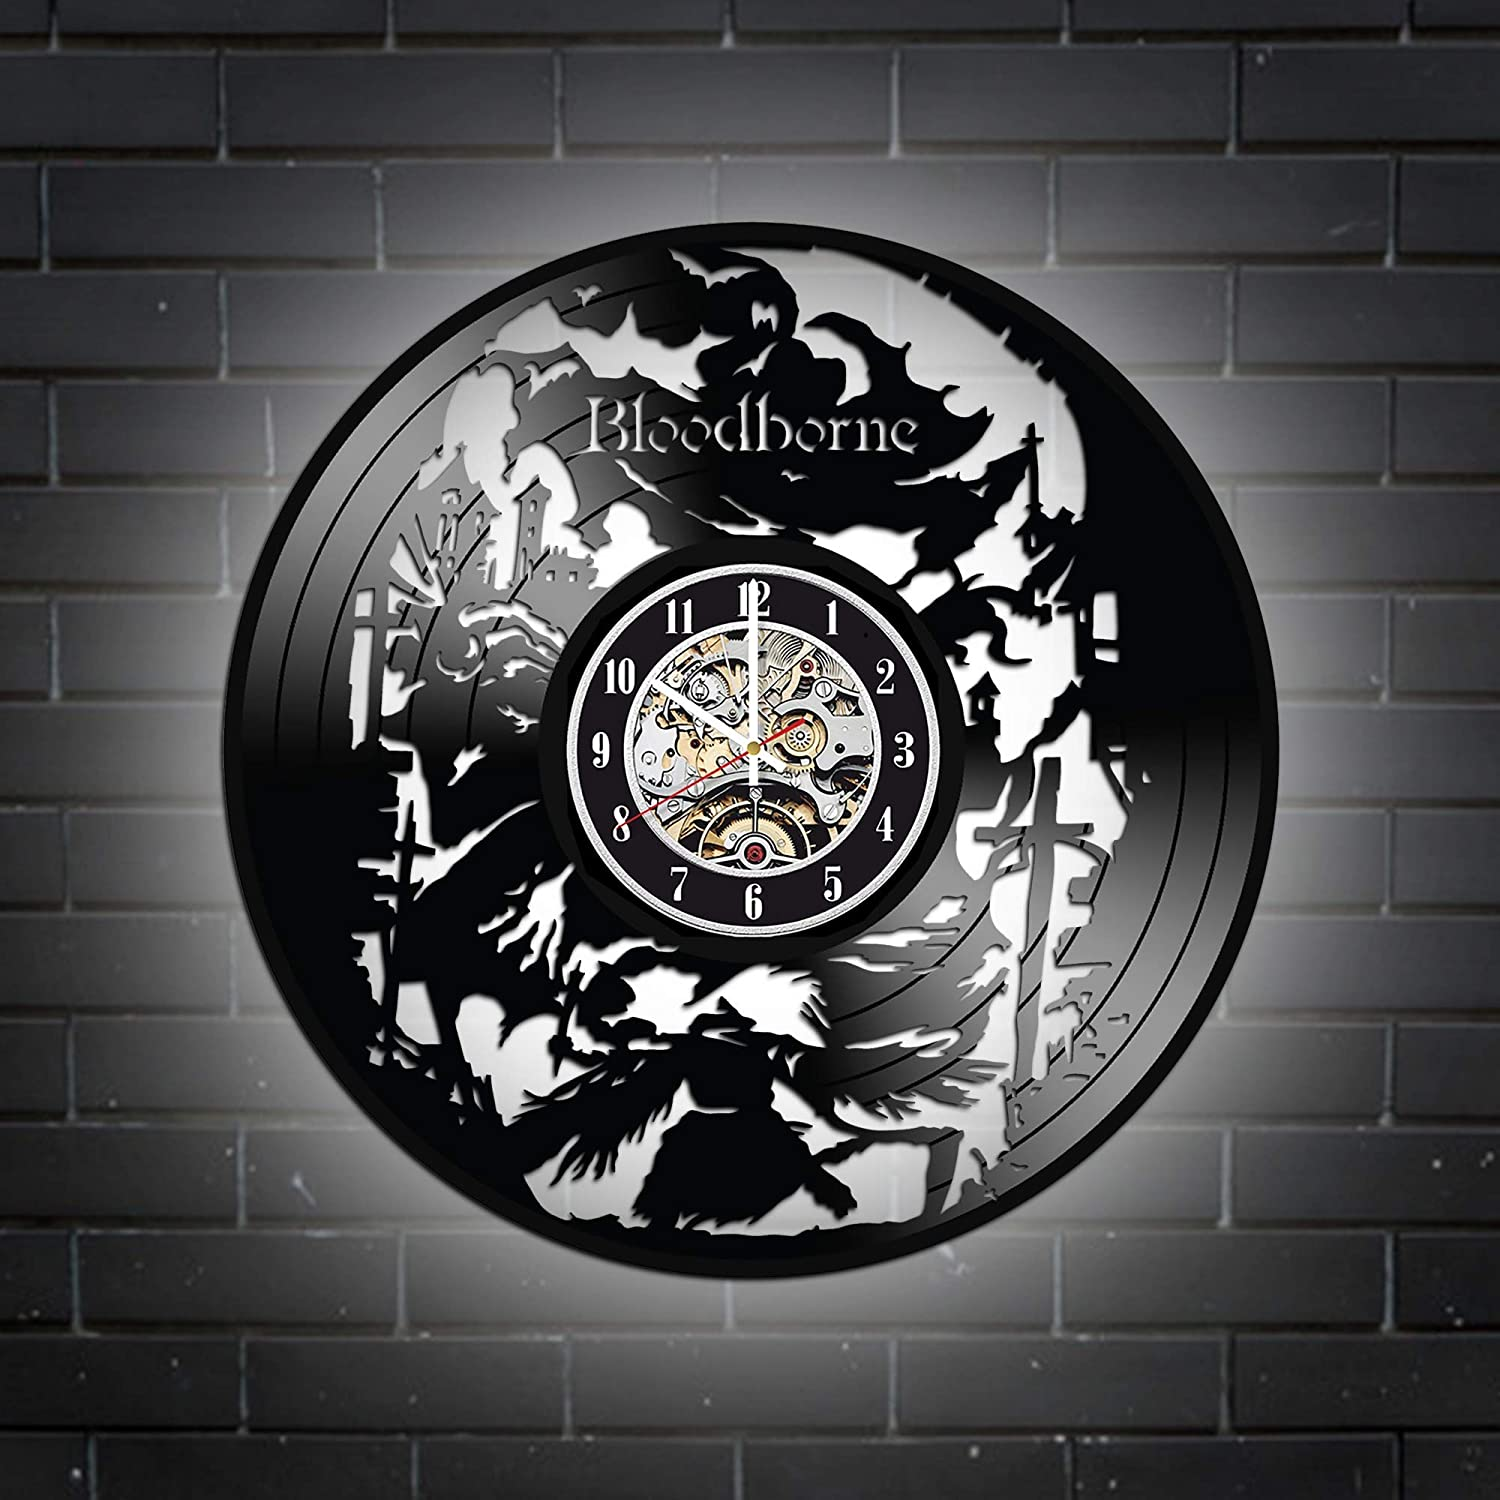 Levescale Bloodborne 優先配送 Lighted Vinyl Wall 通常便なら送料無料 - for Design Clock Slick